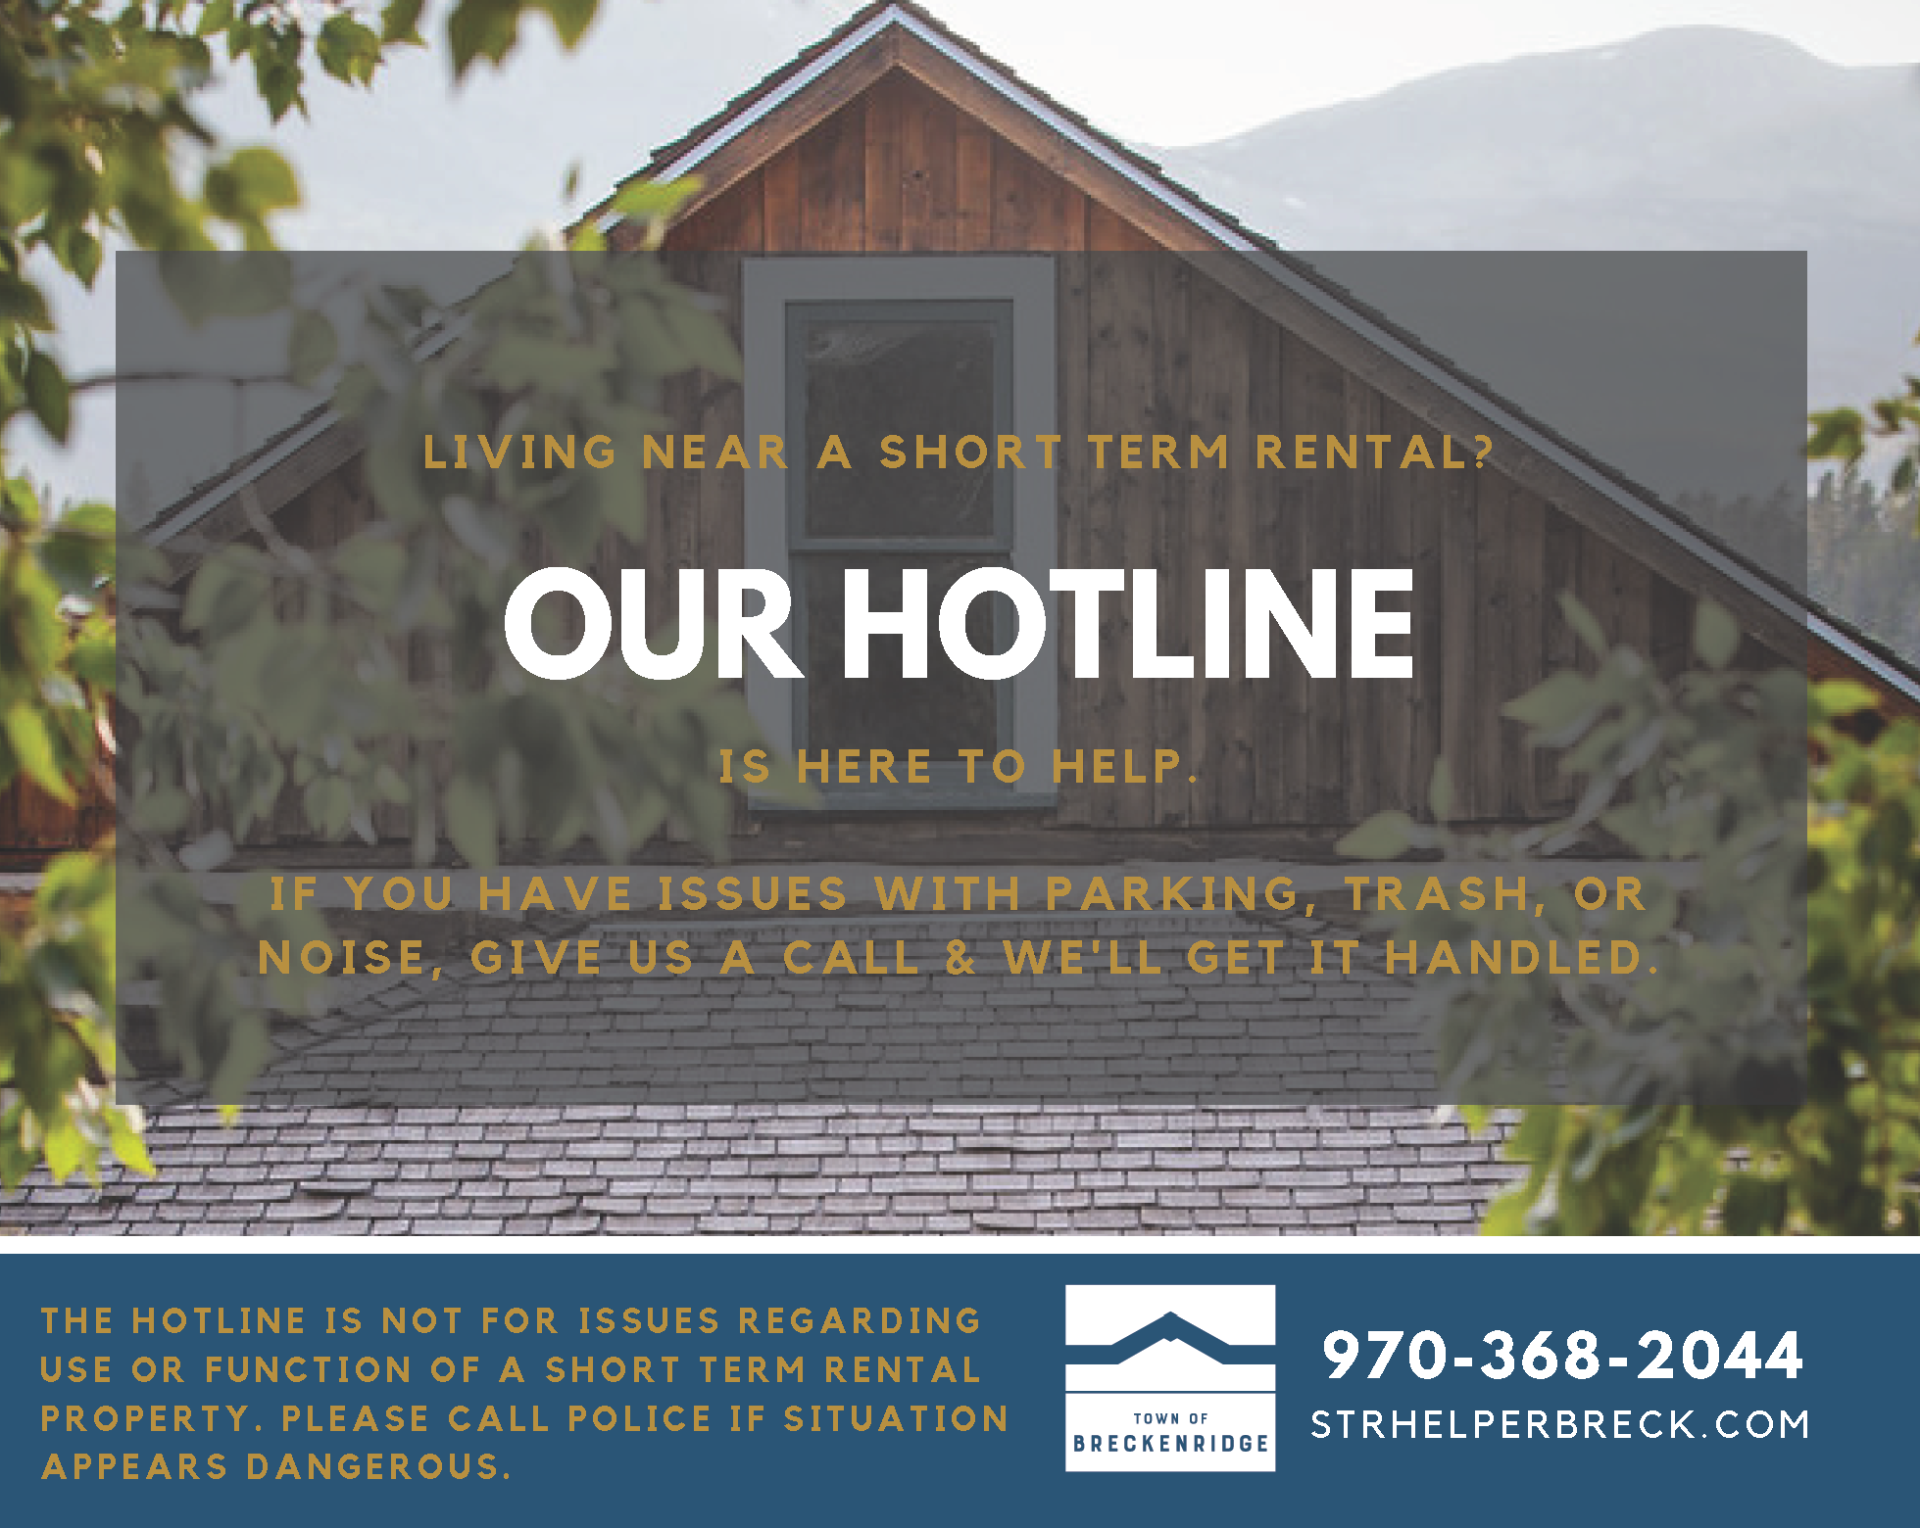 Having issues with a short term rental near you? Call 970-368-2044